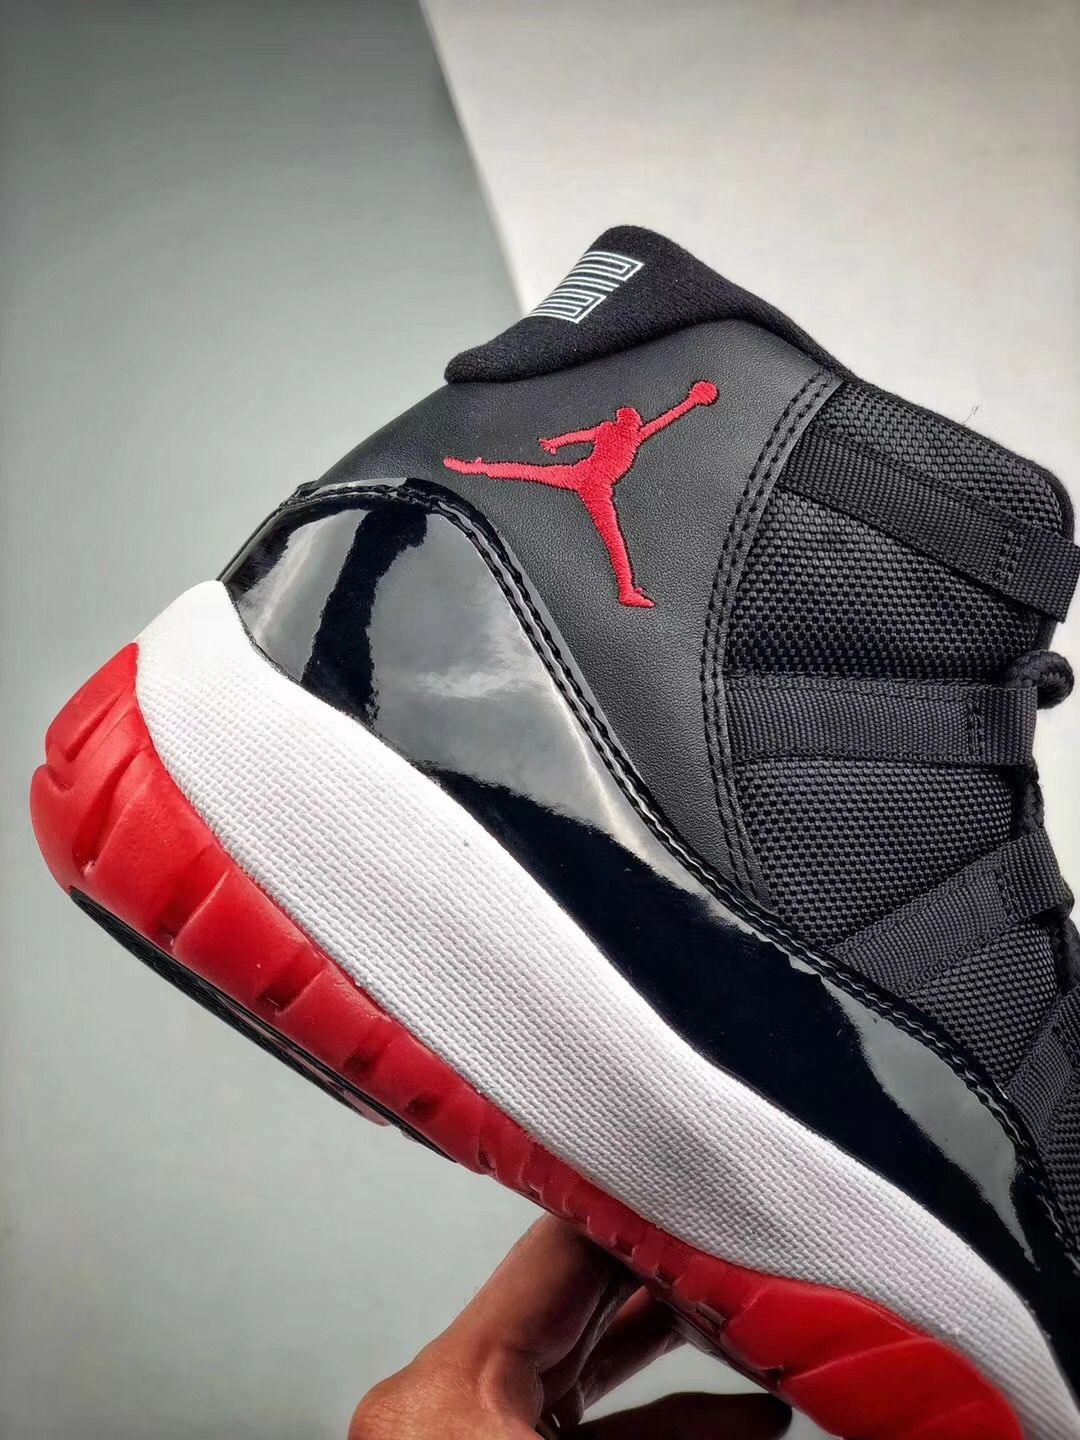 e1ed2df177f8 Air Jordan Retro 11 Bred Basketball Shoe